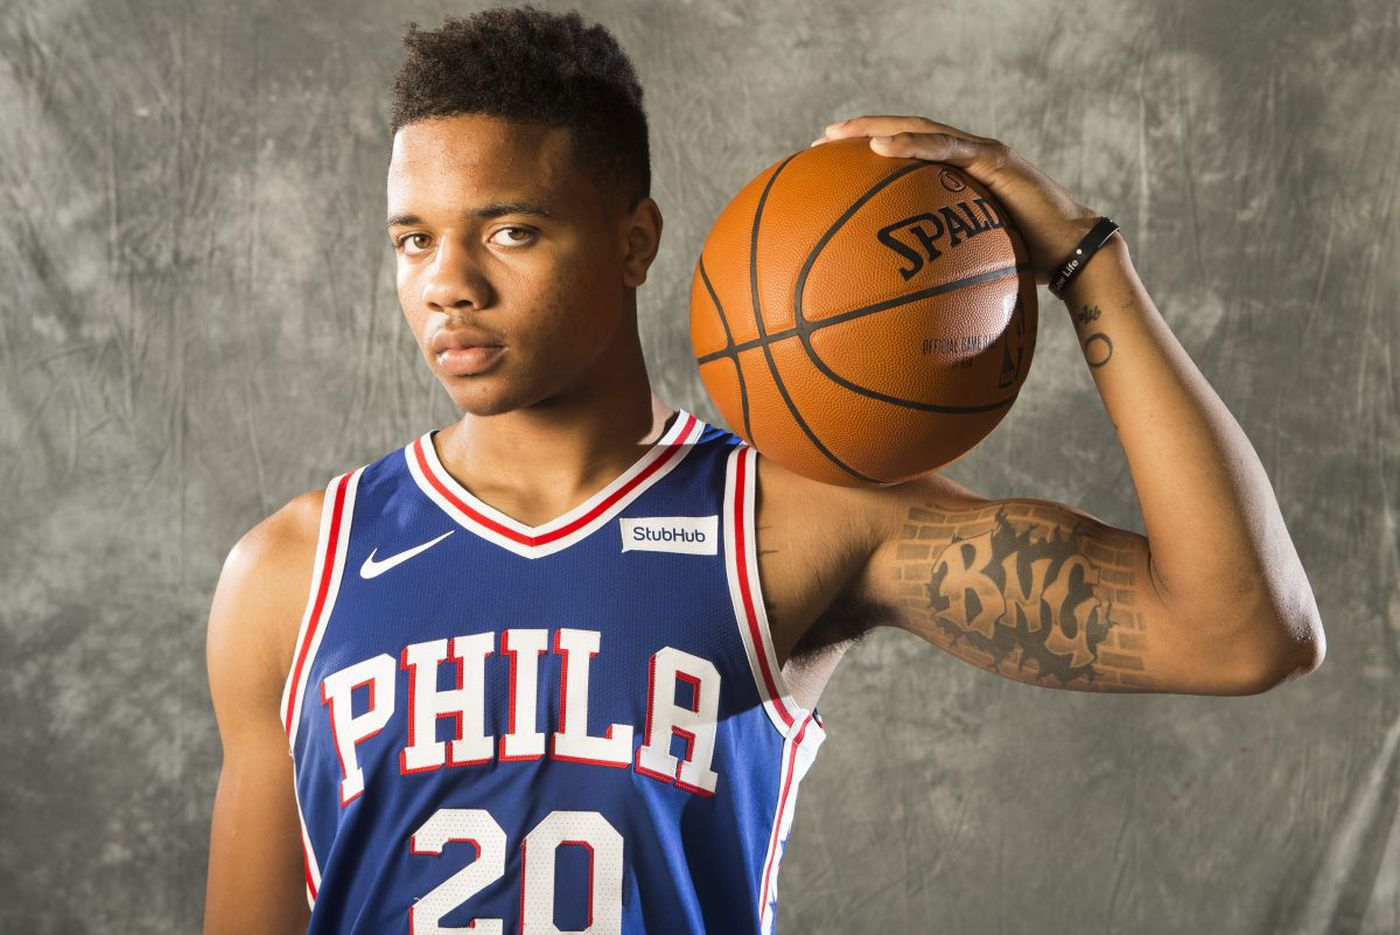 Markelle Fultz's NBA debut will feel like a home game to him